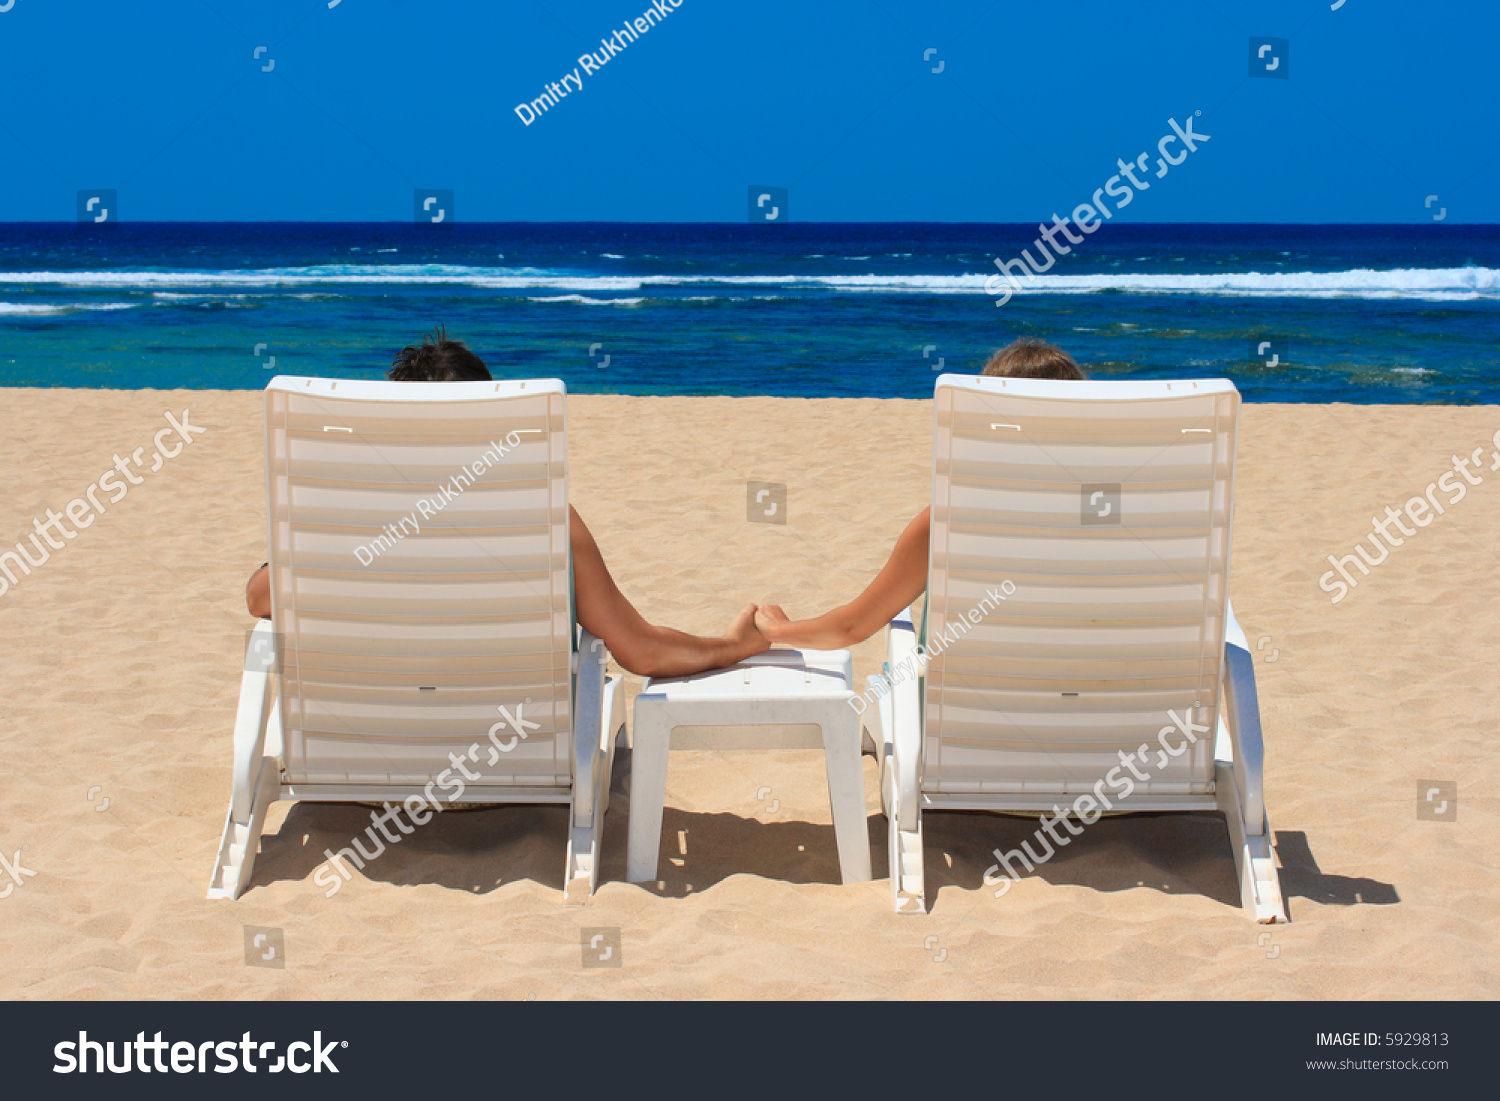 Sunbathing Chairs Honeymoon Couple In Beach Chairs On Resort Sunbathing